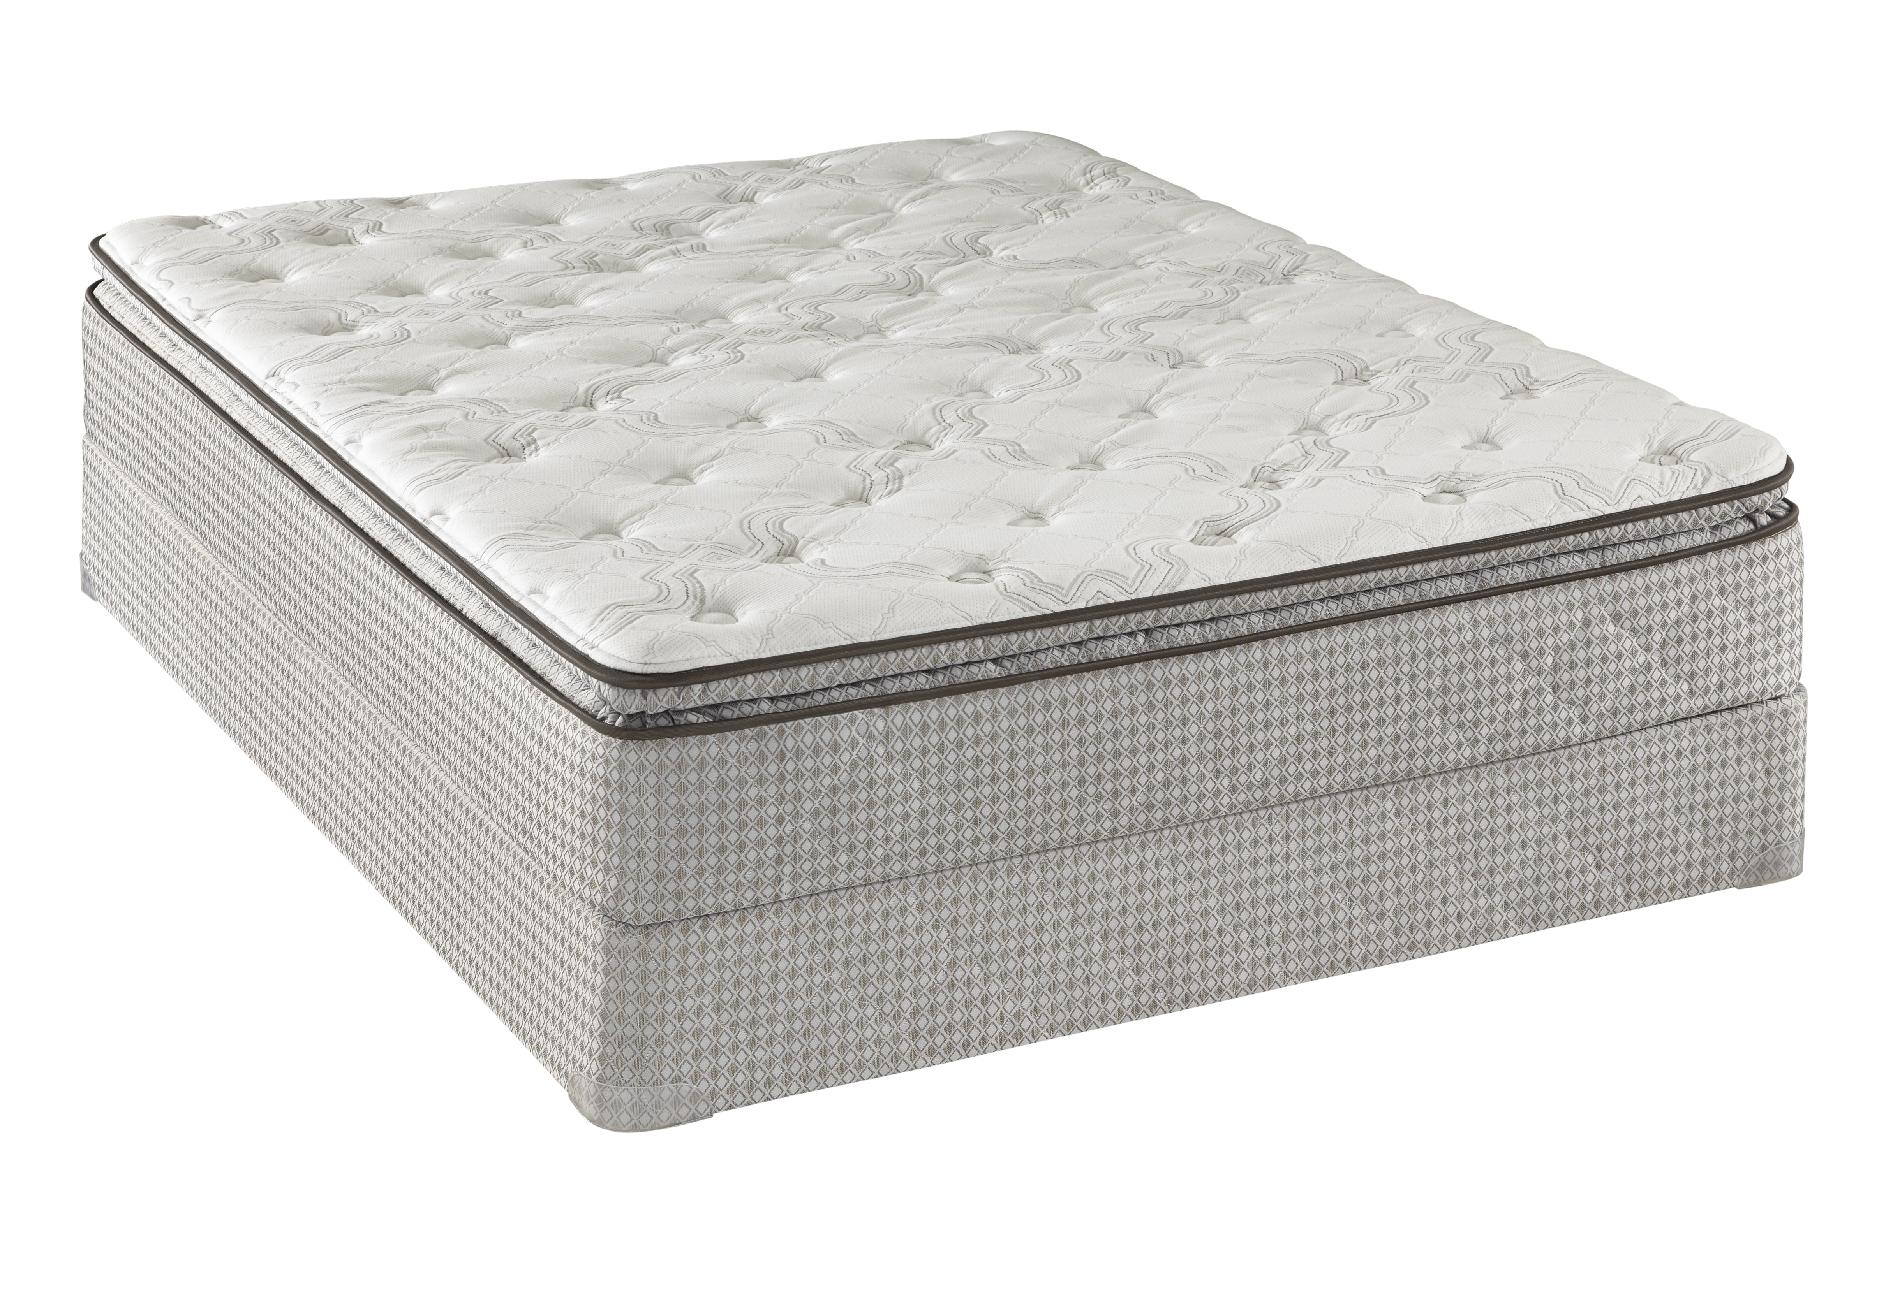 Sealy Tropica Select, Firm Euro Pillotop, Full Mattress Only